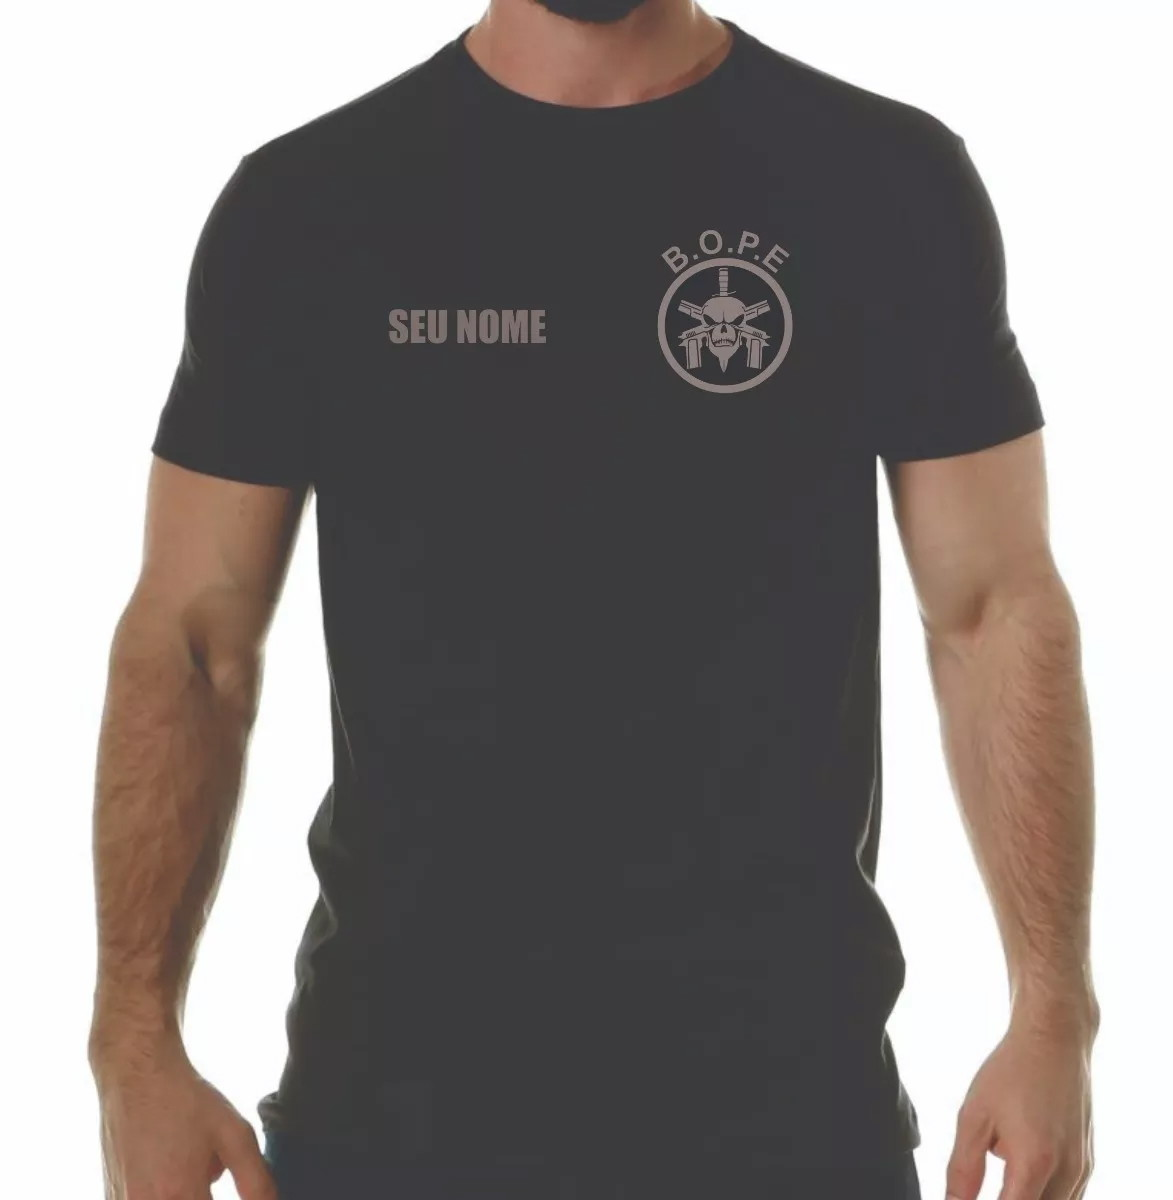 b8e3ec49ea Camiseta do Bope